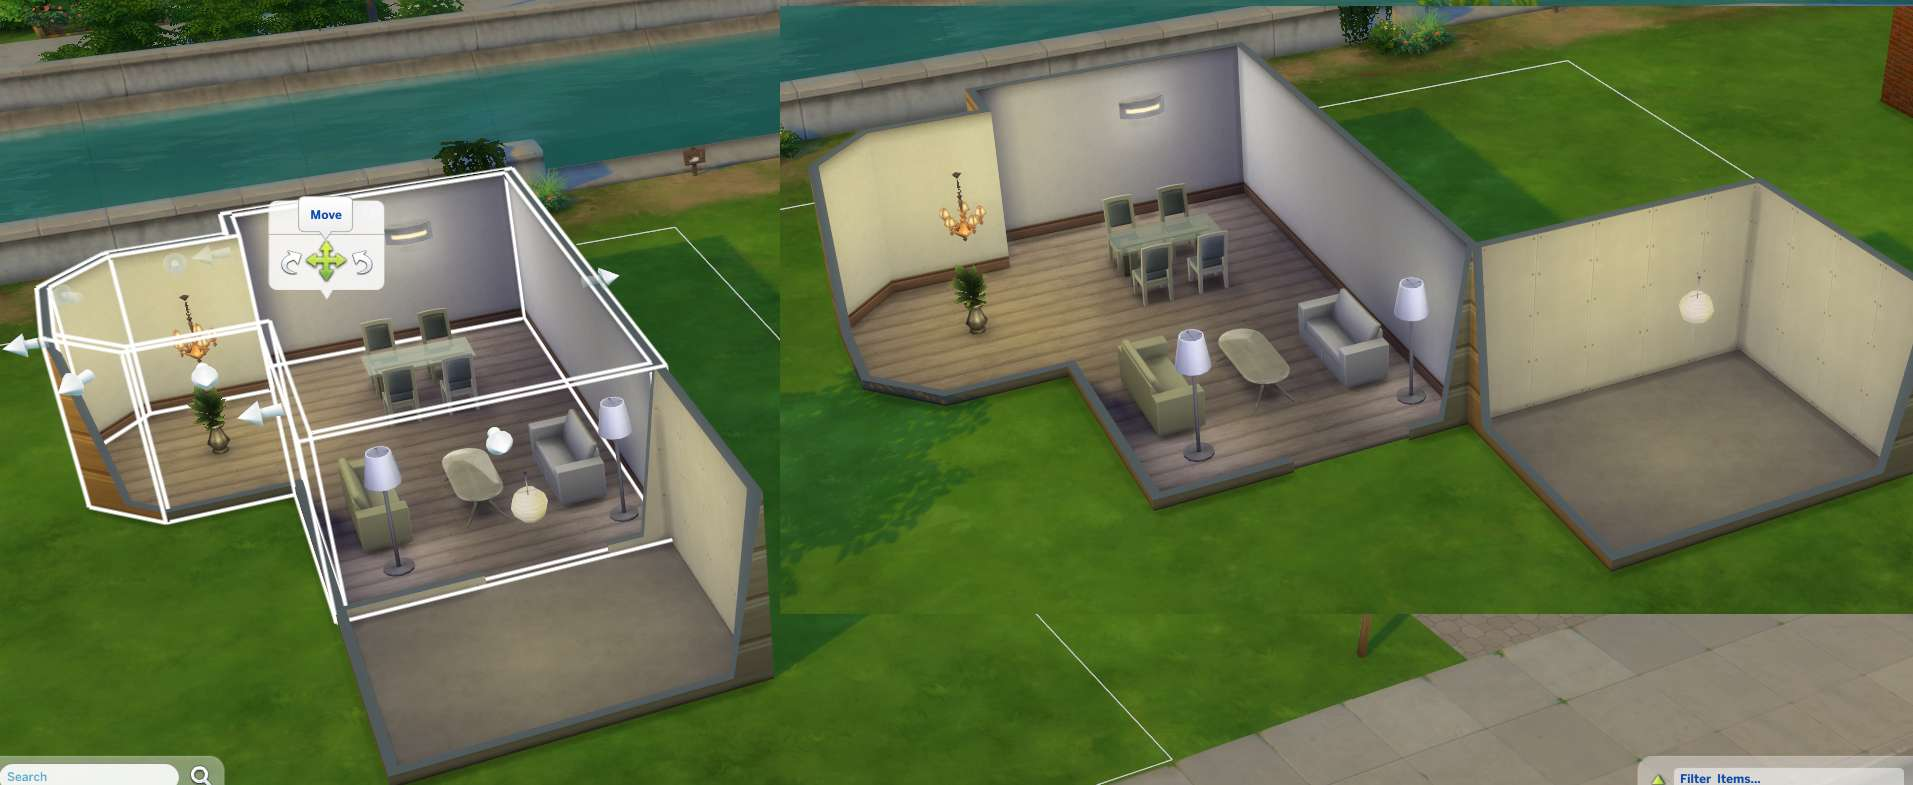 build your own house game like sims sims 4 build mode tutorials for houses and landscaping 13561